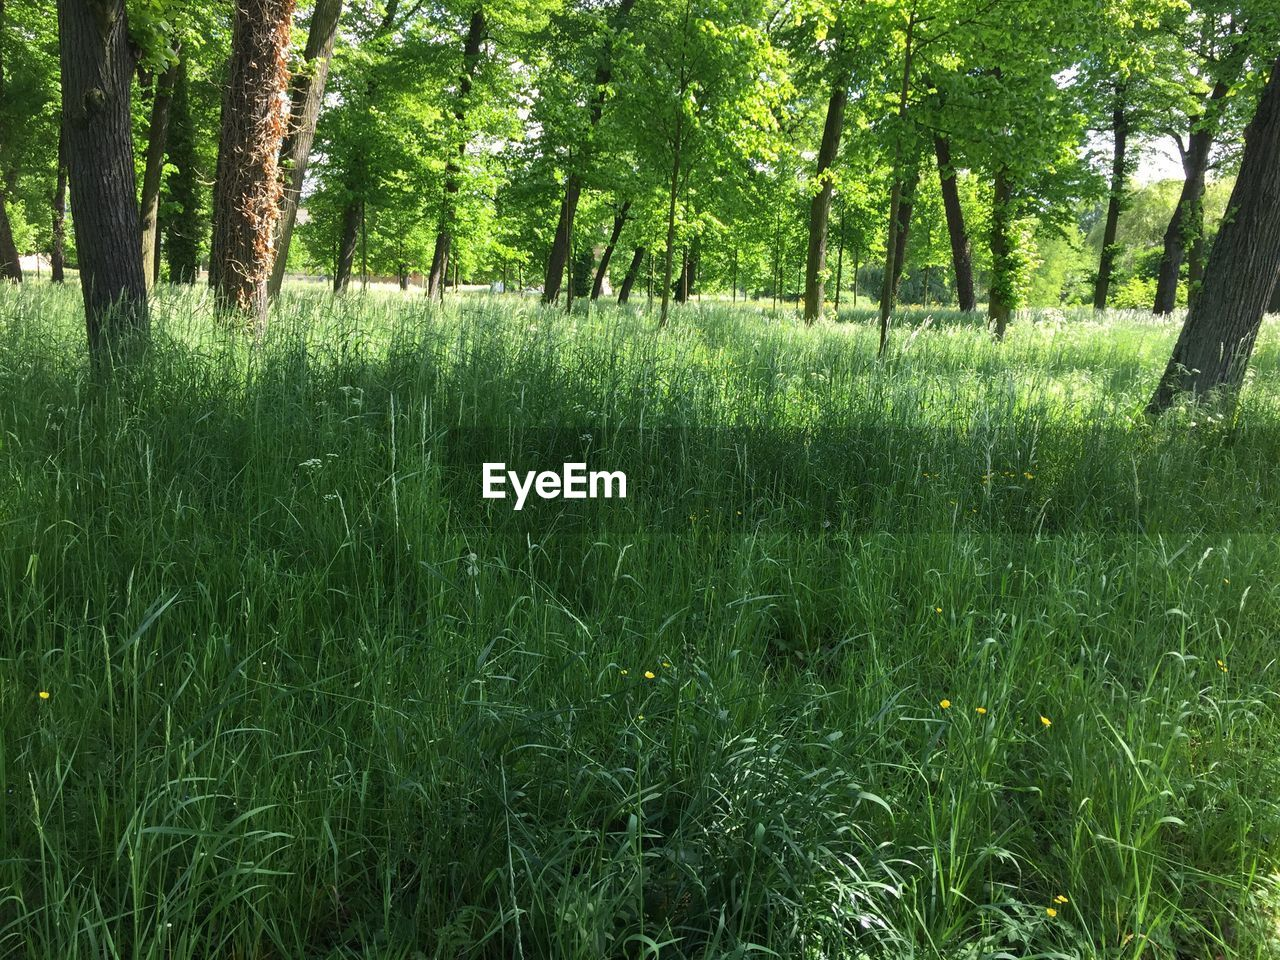 Trees growing on grassy meadow